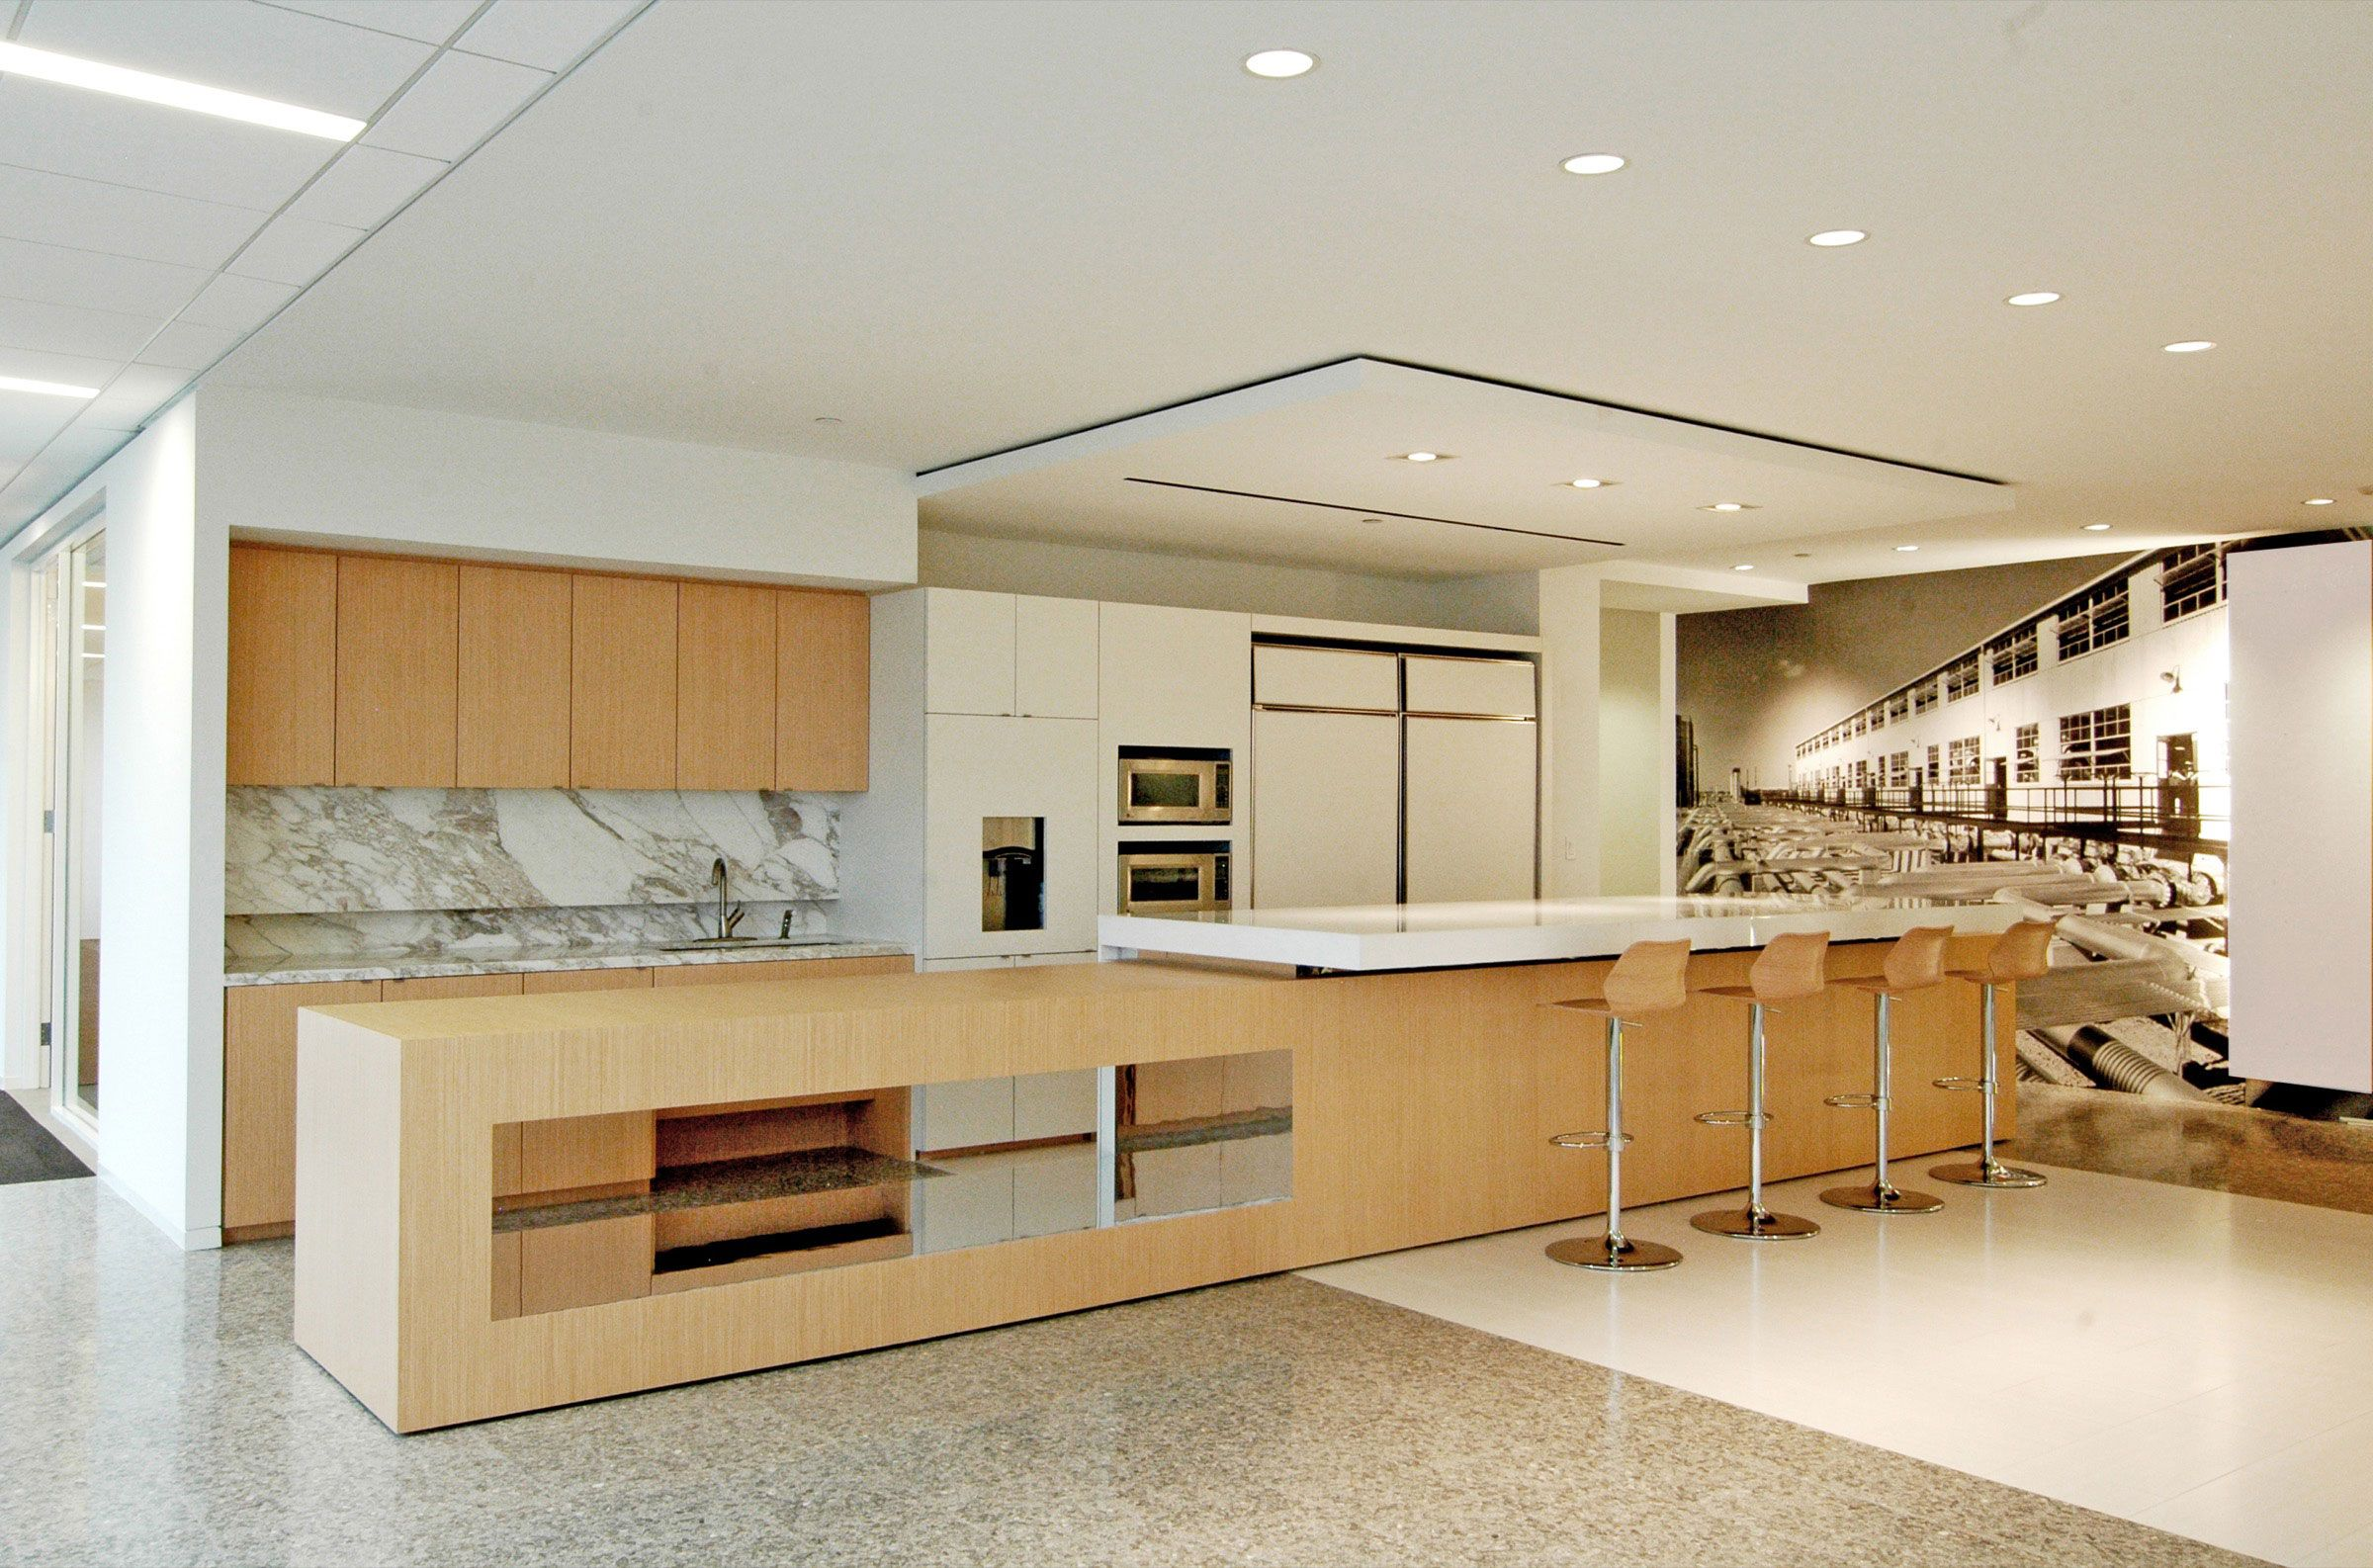 Gulf South Pipeline Houston Tx With Images Interior Design